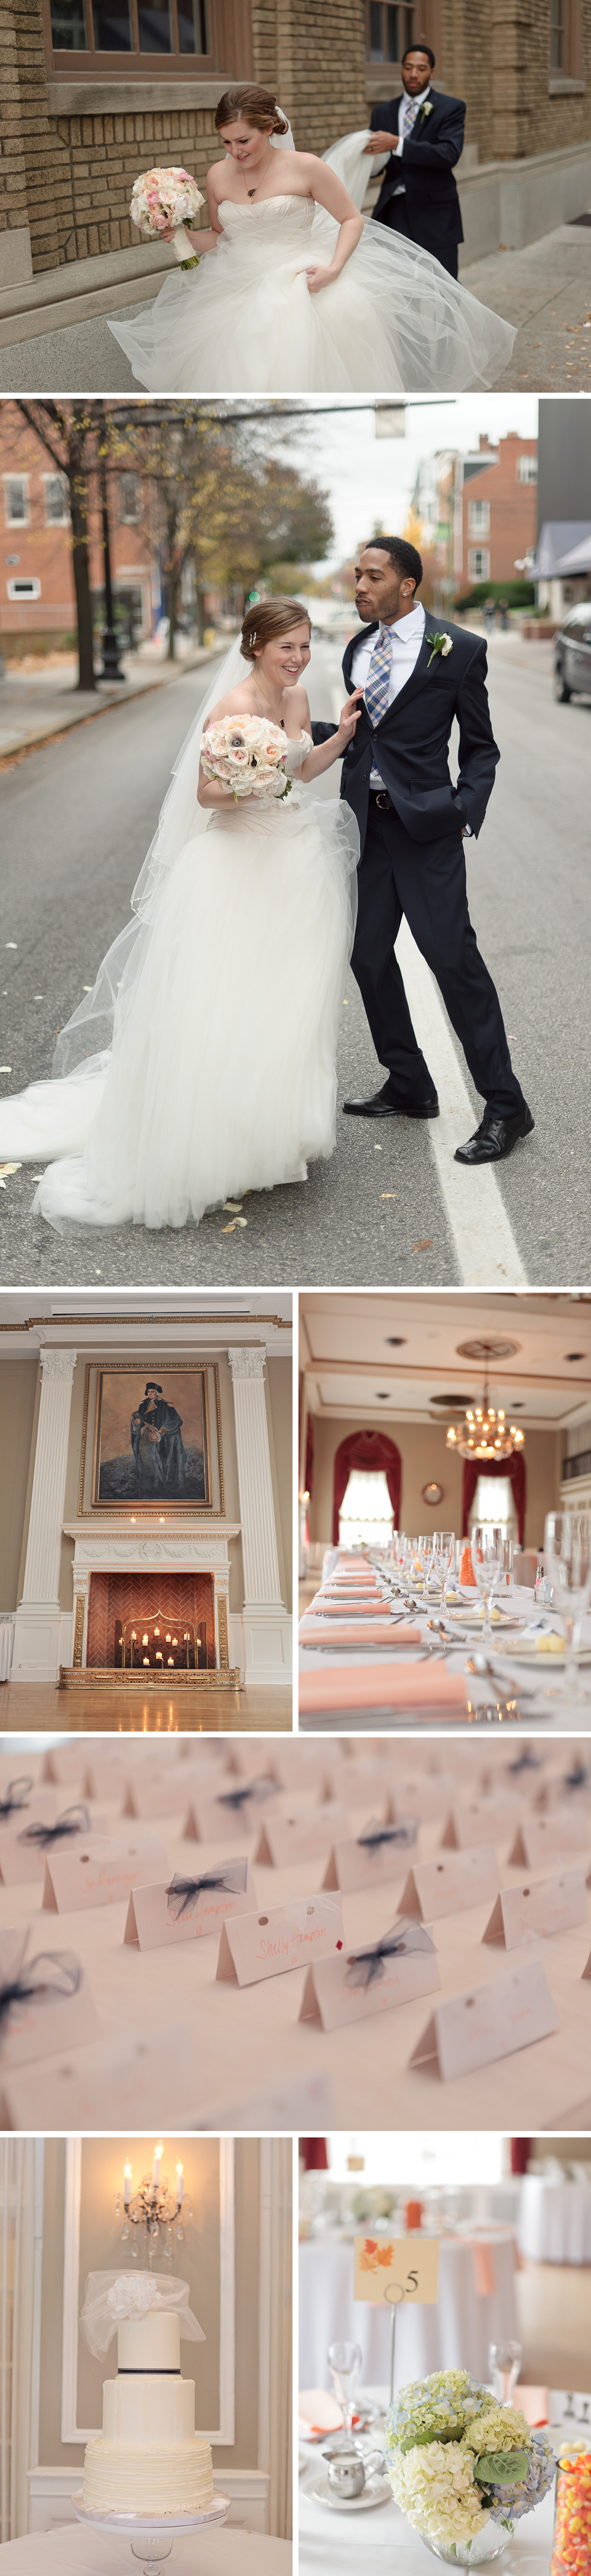 Yorktowne Hotel Wedding photography